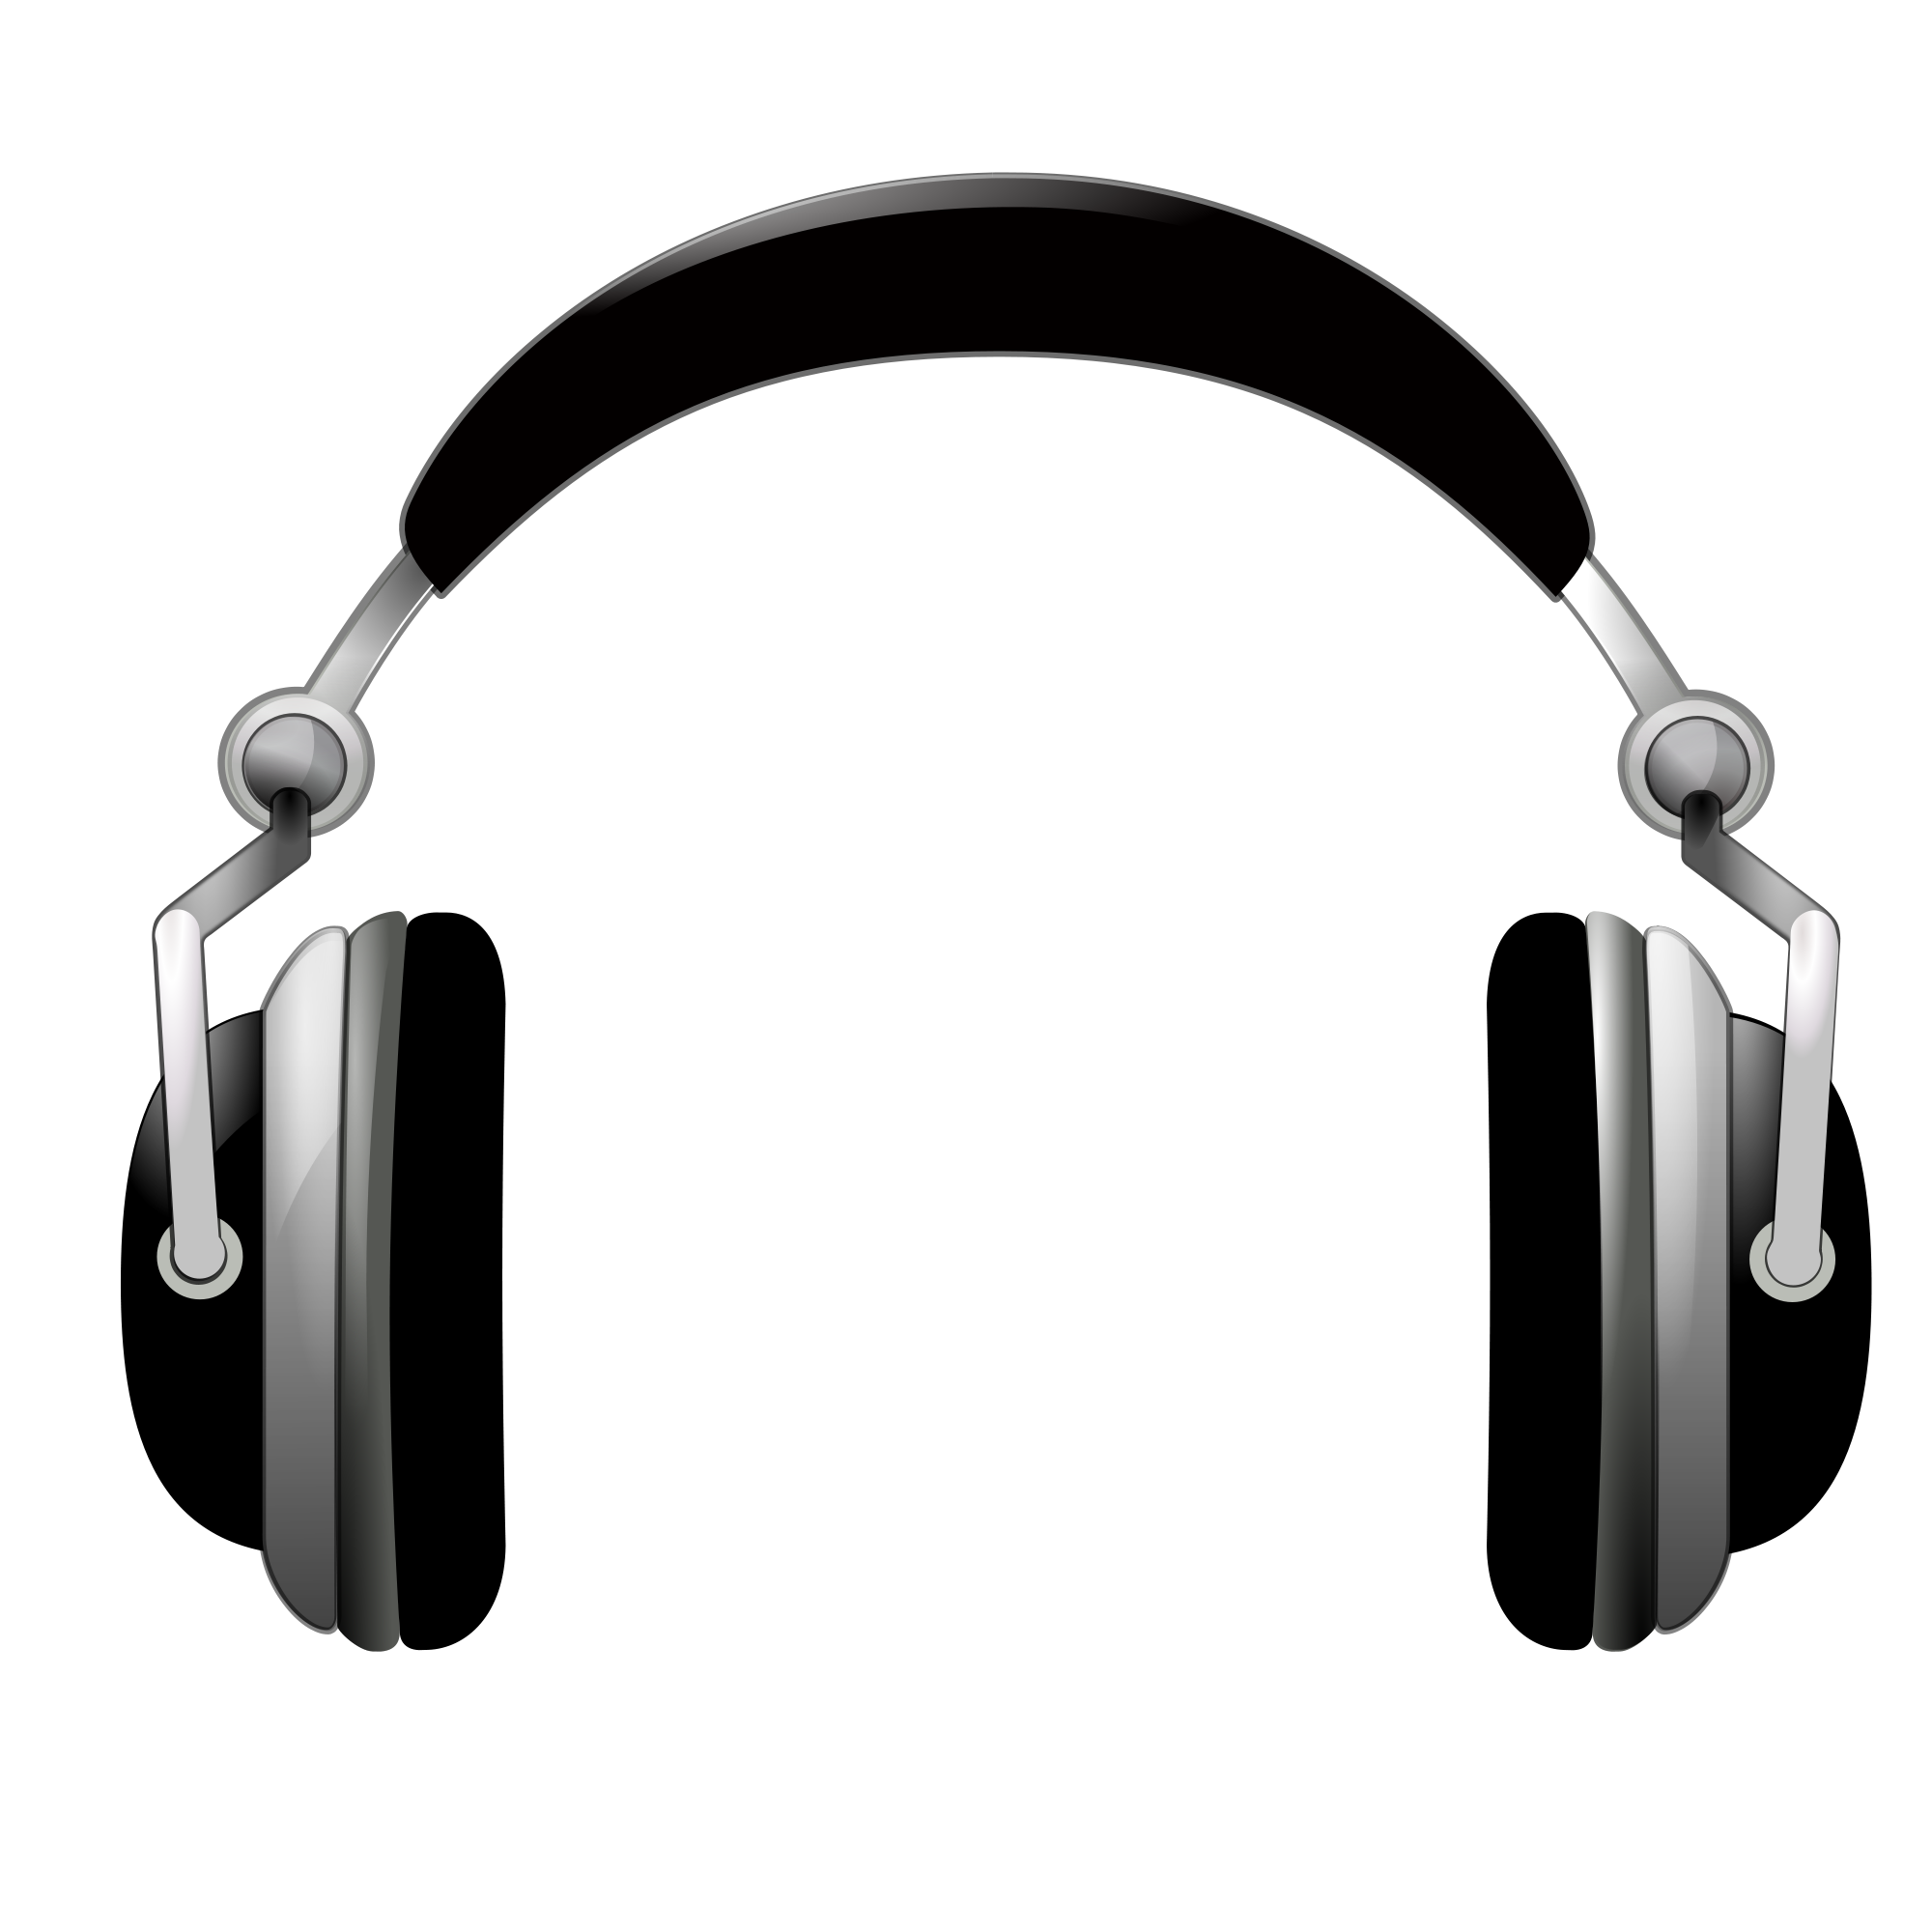 Headphones clipart transparent background. Png images all